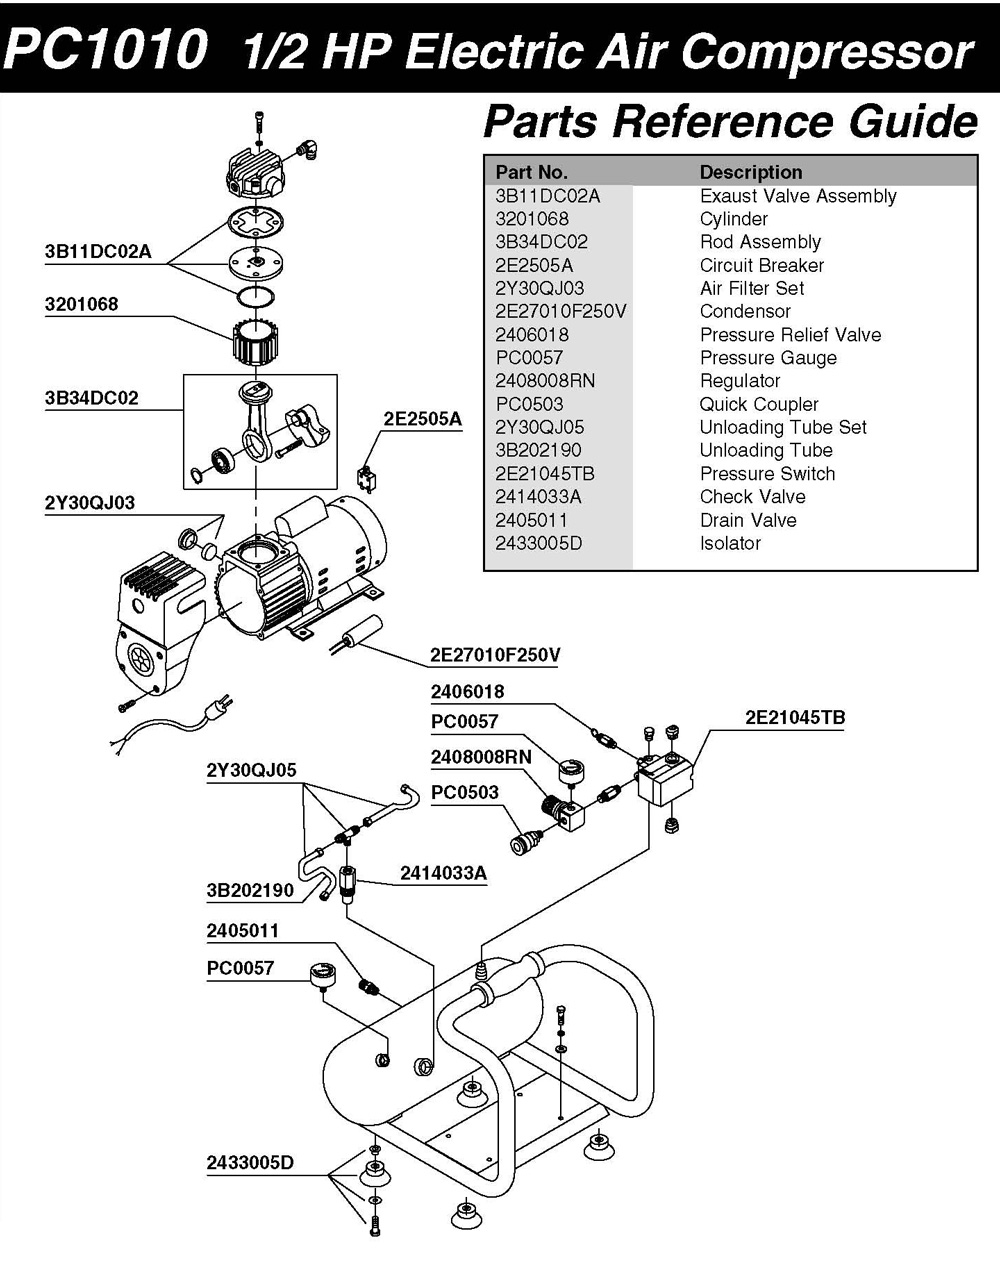 Air  pressor Parts 3z323e P 52671 besides Dewalt Air  pressor Wiring Diagram in addition Air  pressor Motor Starter Wiring as well How To Read Electrical Wiring Diagrams together with Sanborn Wiring Diagrams. on wiring diagram sanborn air compressor